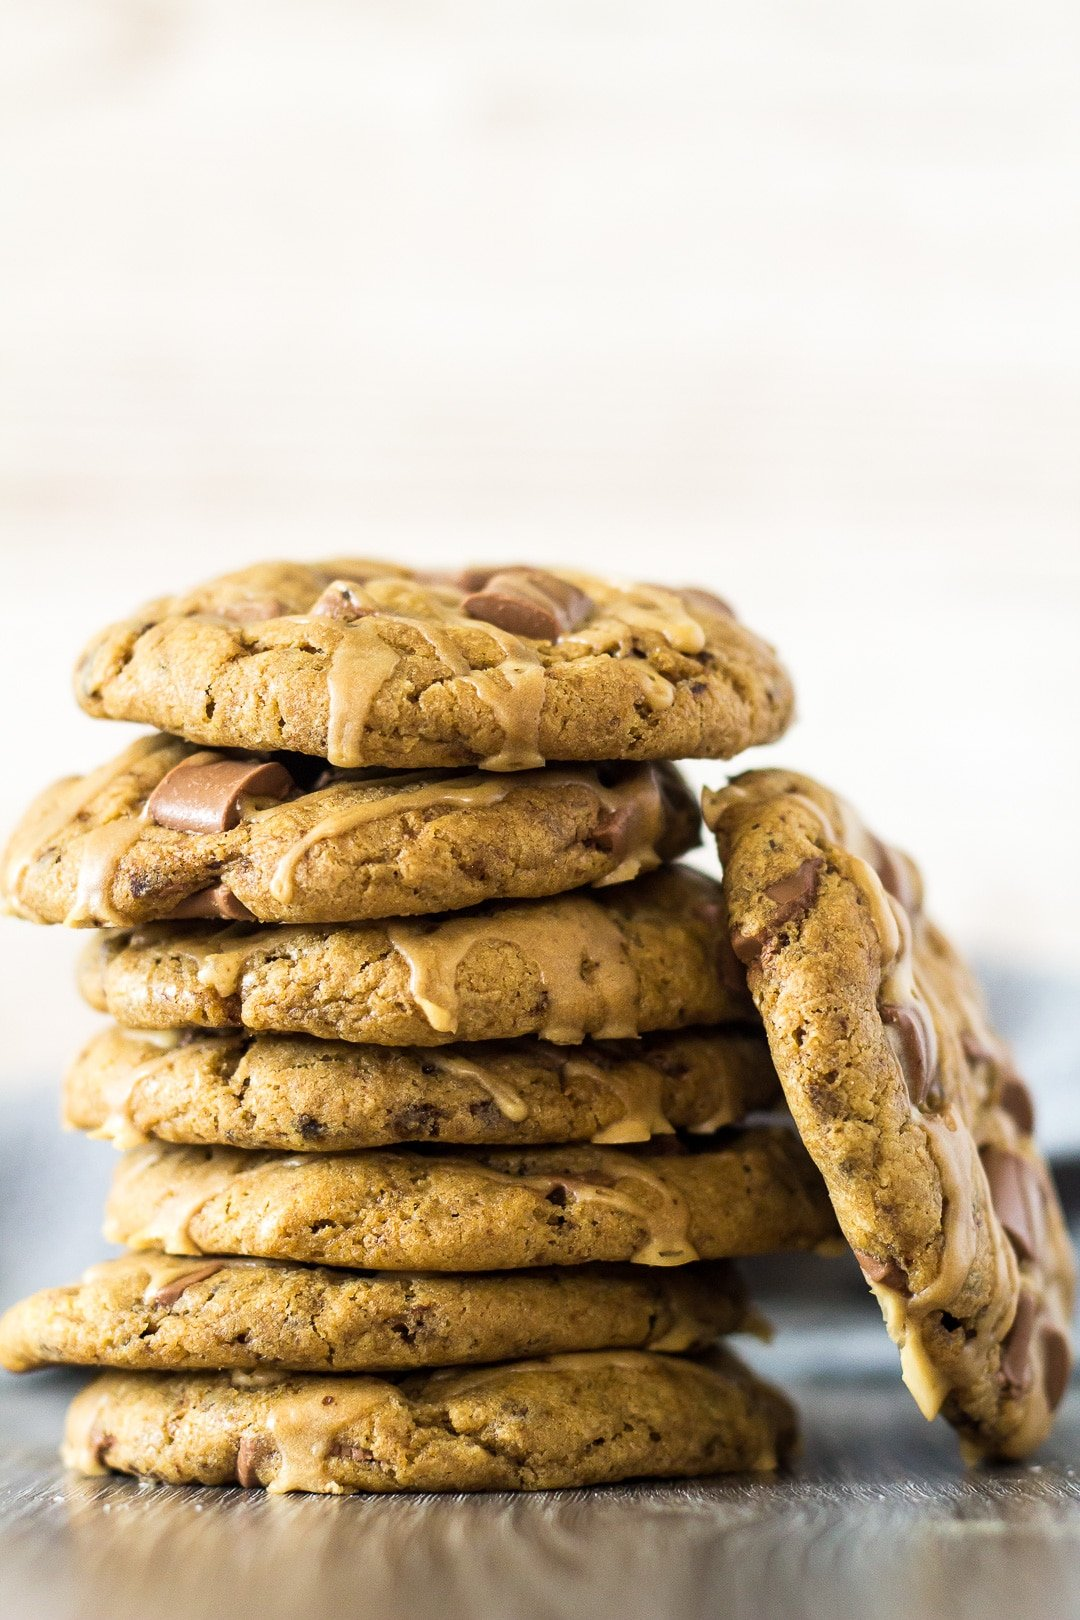 A stack of Chocolate Chip Coffee Cookies with one cookie leaning up against the stack.